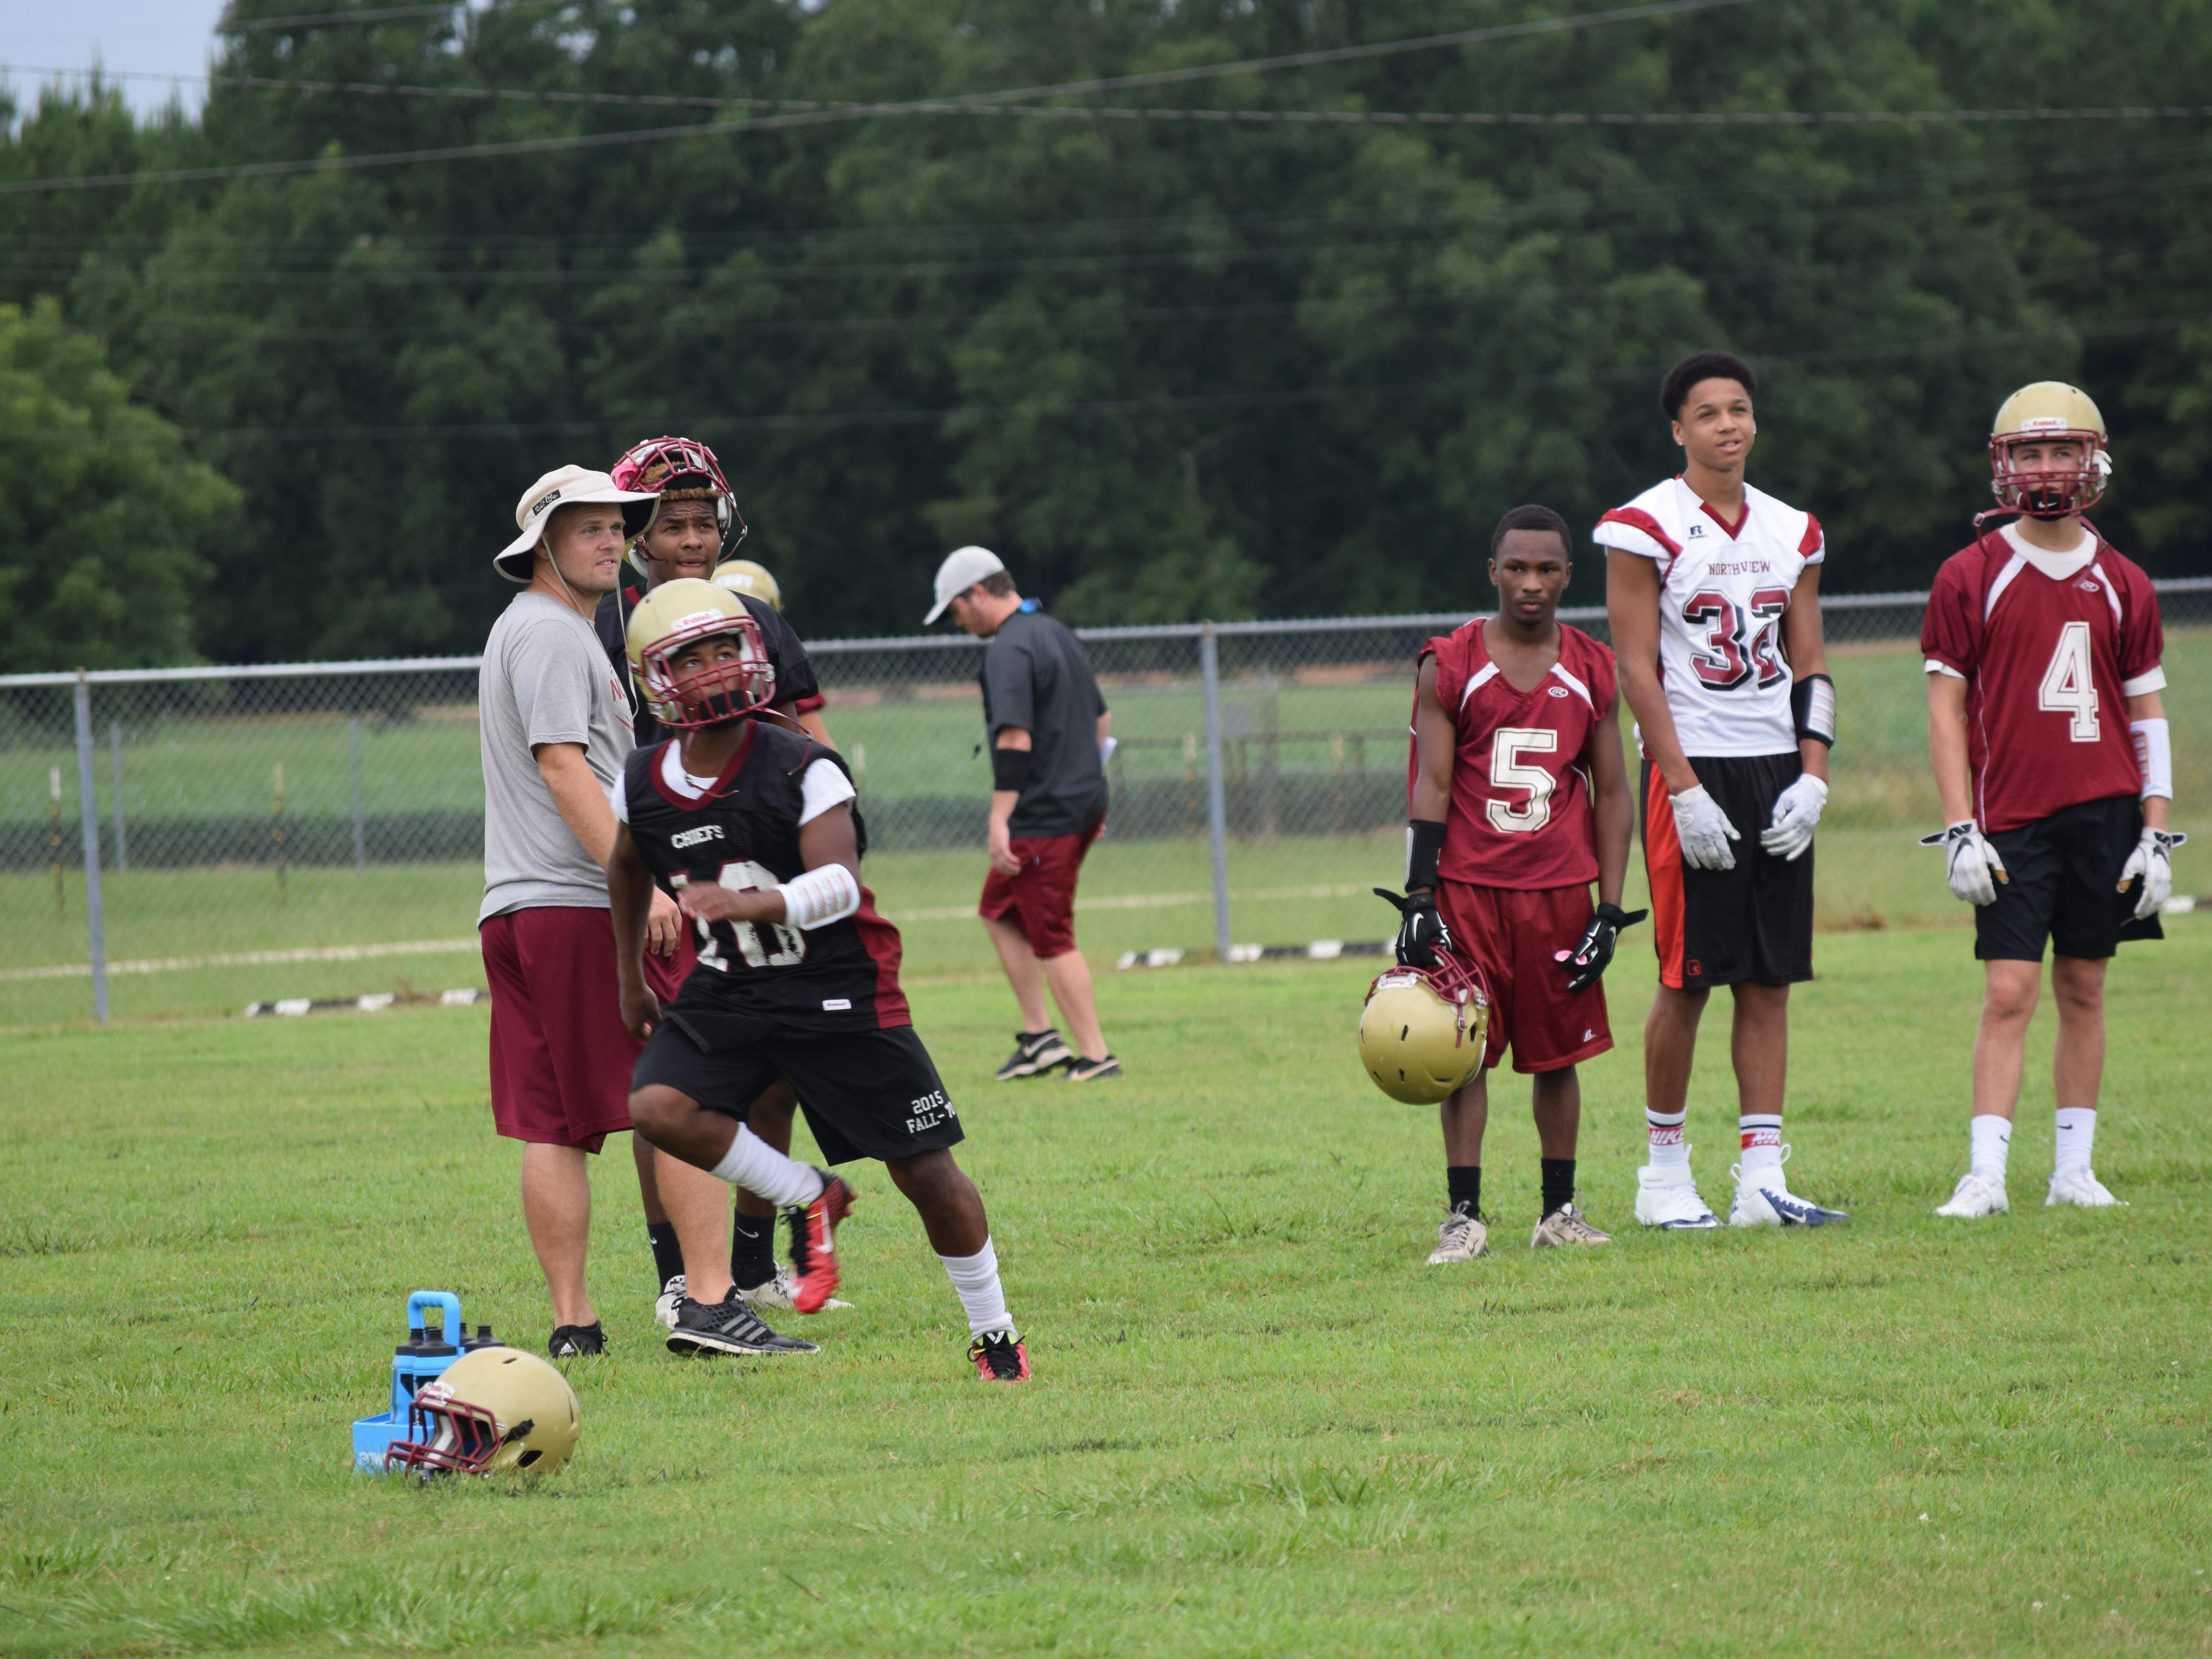 Northview's MJ Jones, a cornerback, goes through drills during a recent practice.